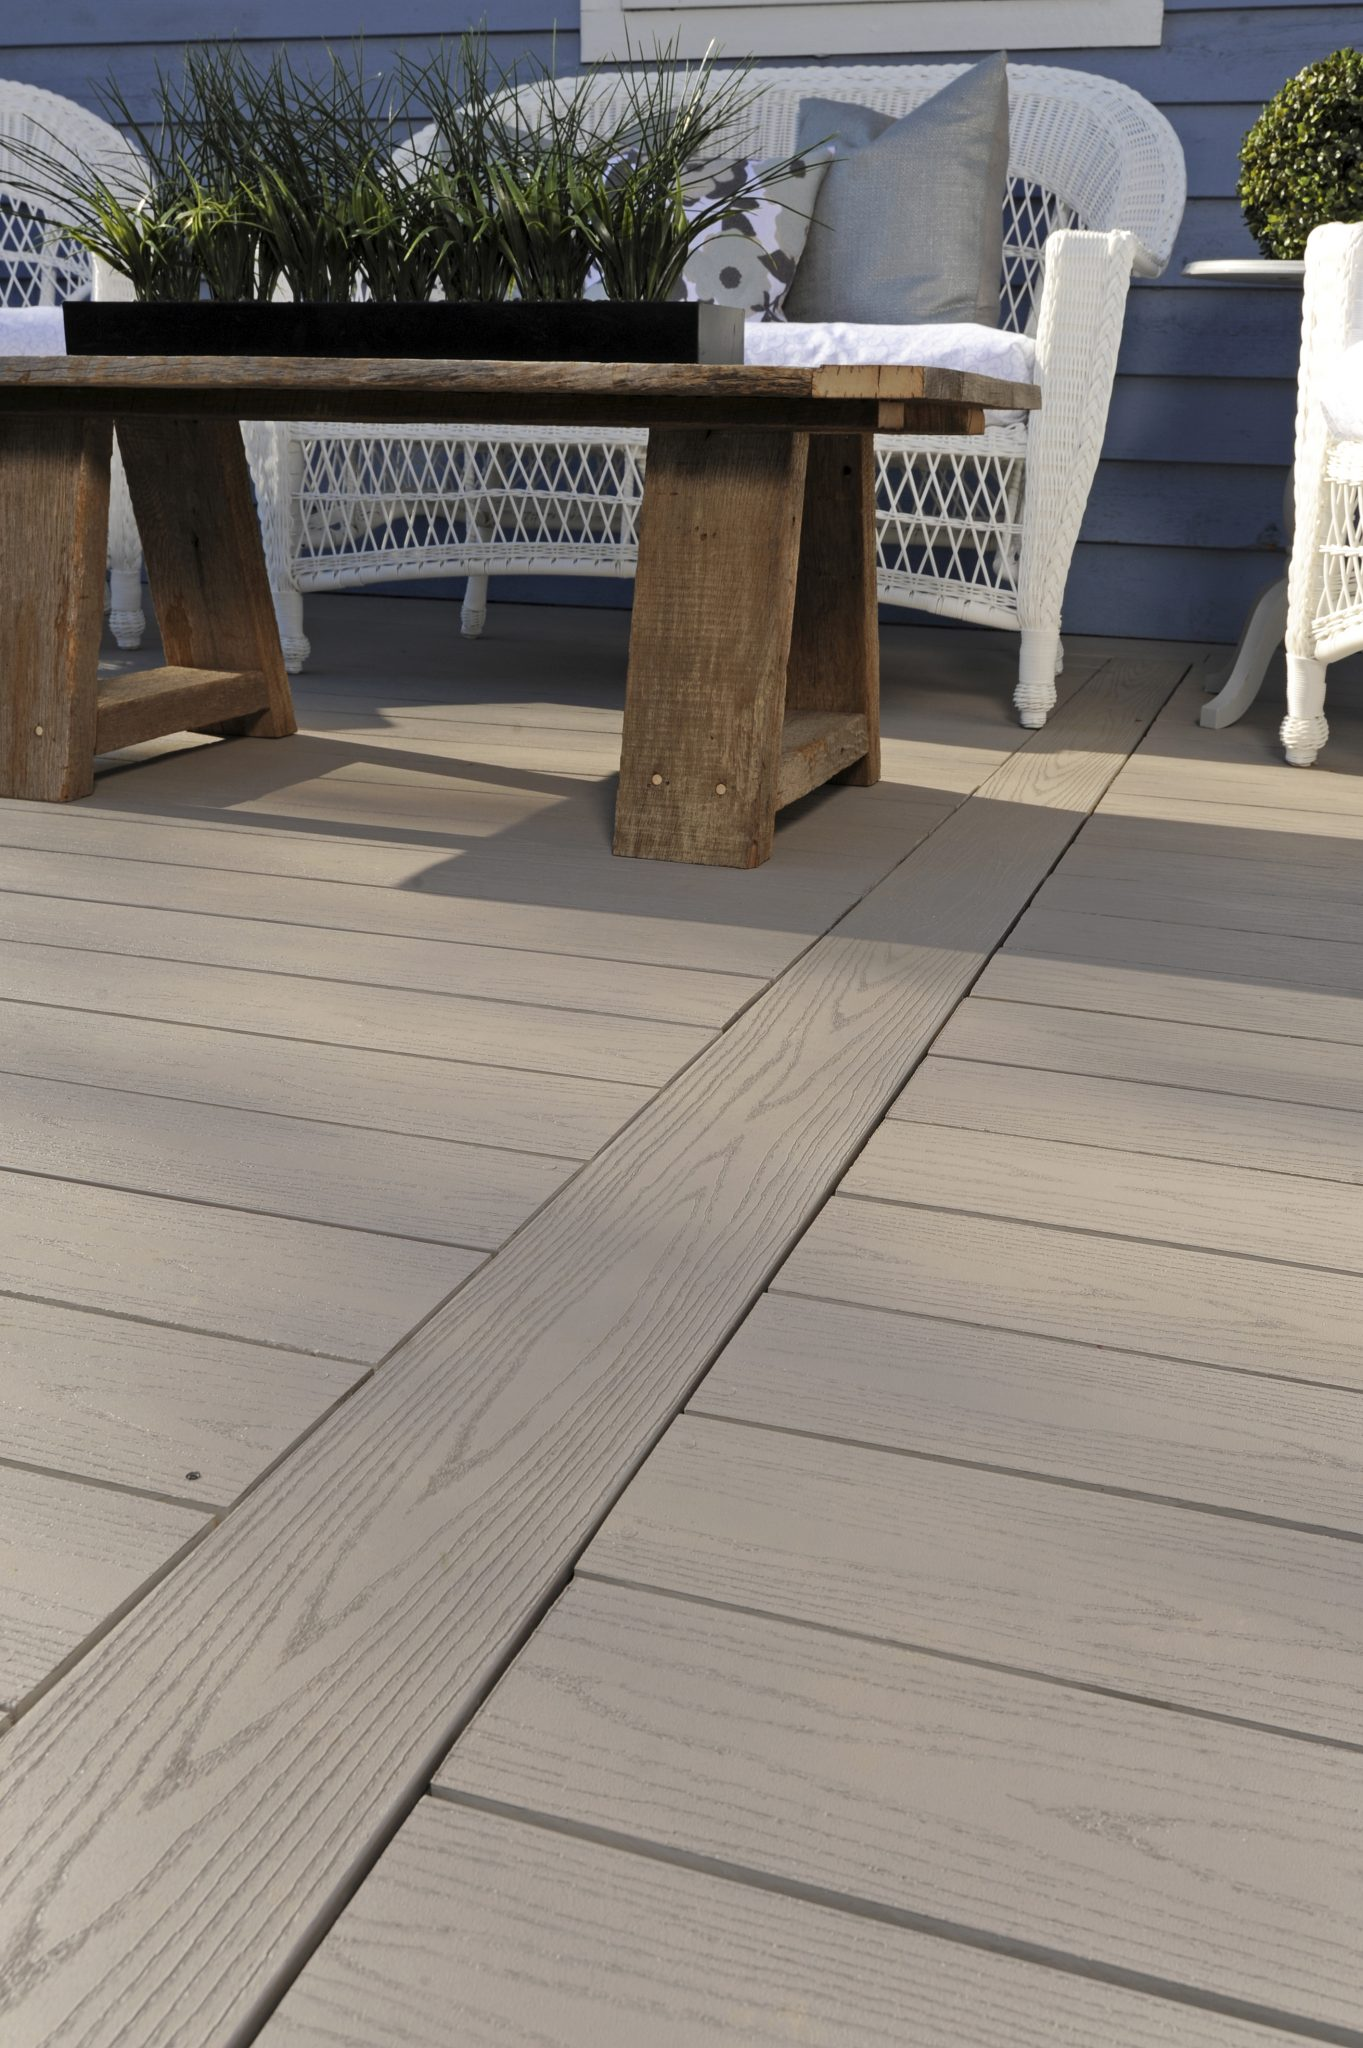 AZEK Capped Polymer Composite Decking vs. Wood – Which is Better?